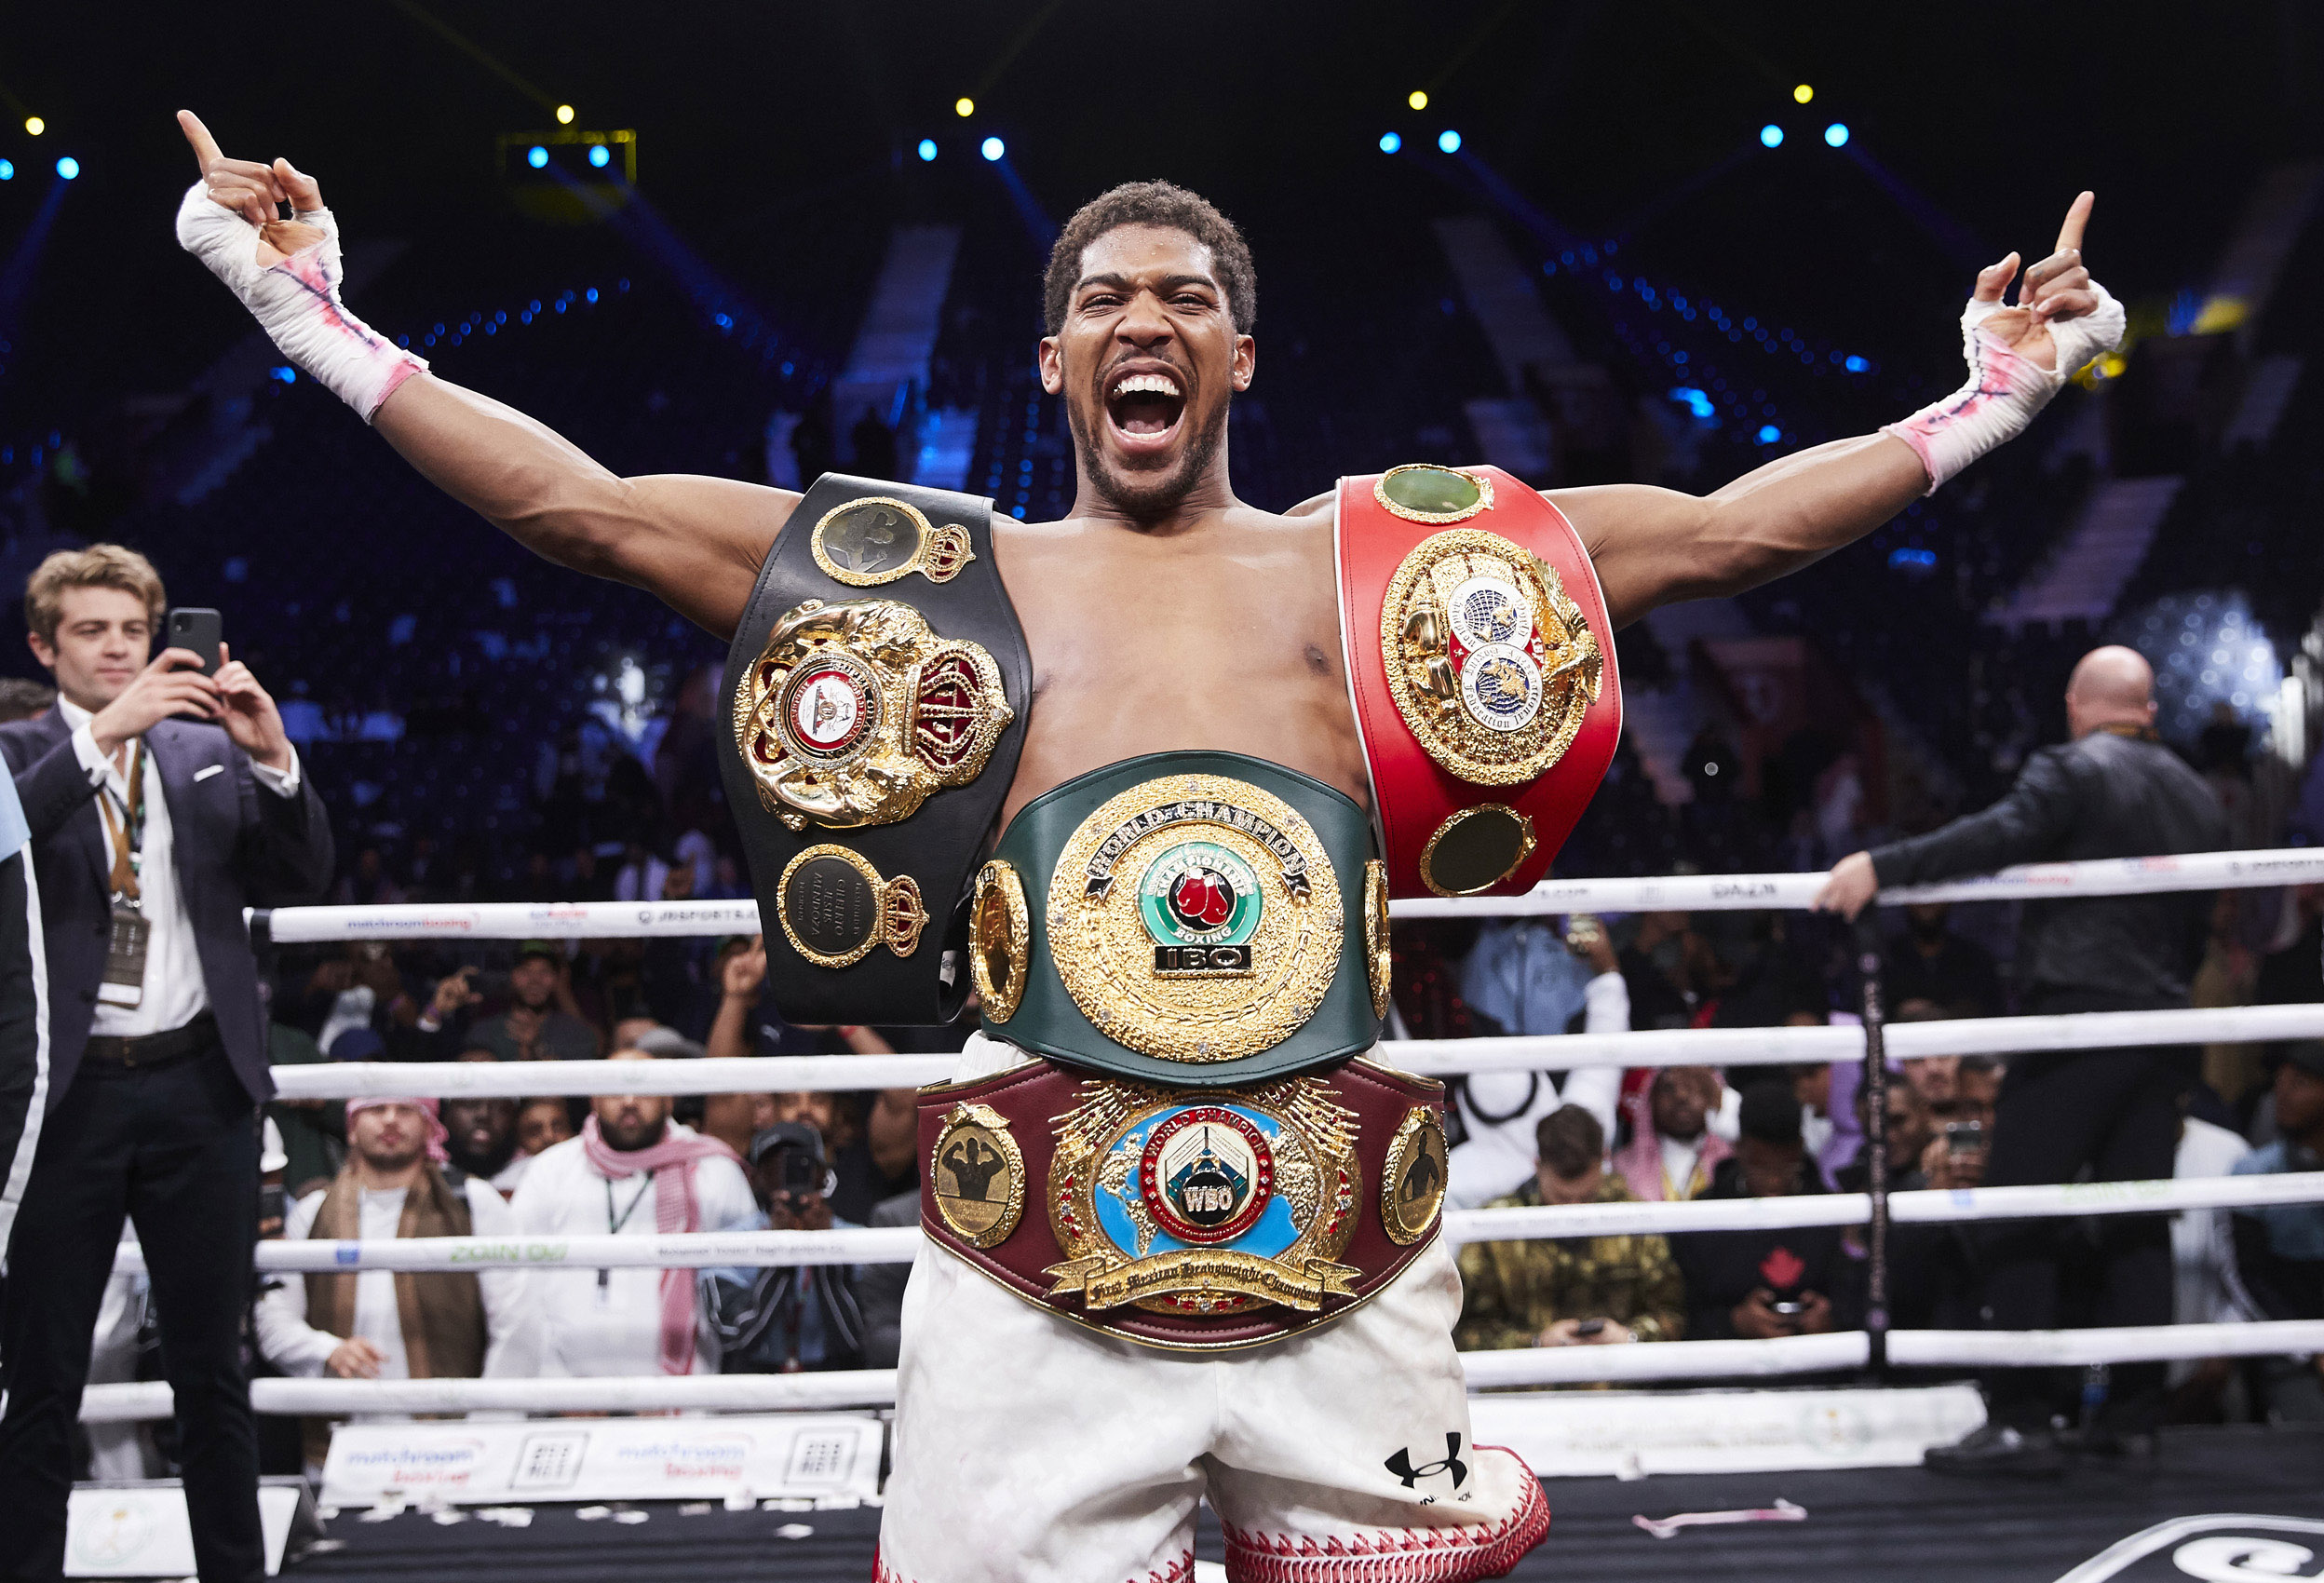 Anthony Joshua All The Belts Saudi Arabia Rematch Andy Ruiz Jr © Mark Robinson Photographer Matchrrom Boxing 2019.